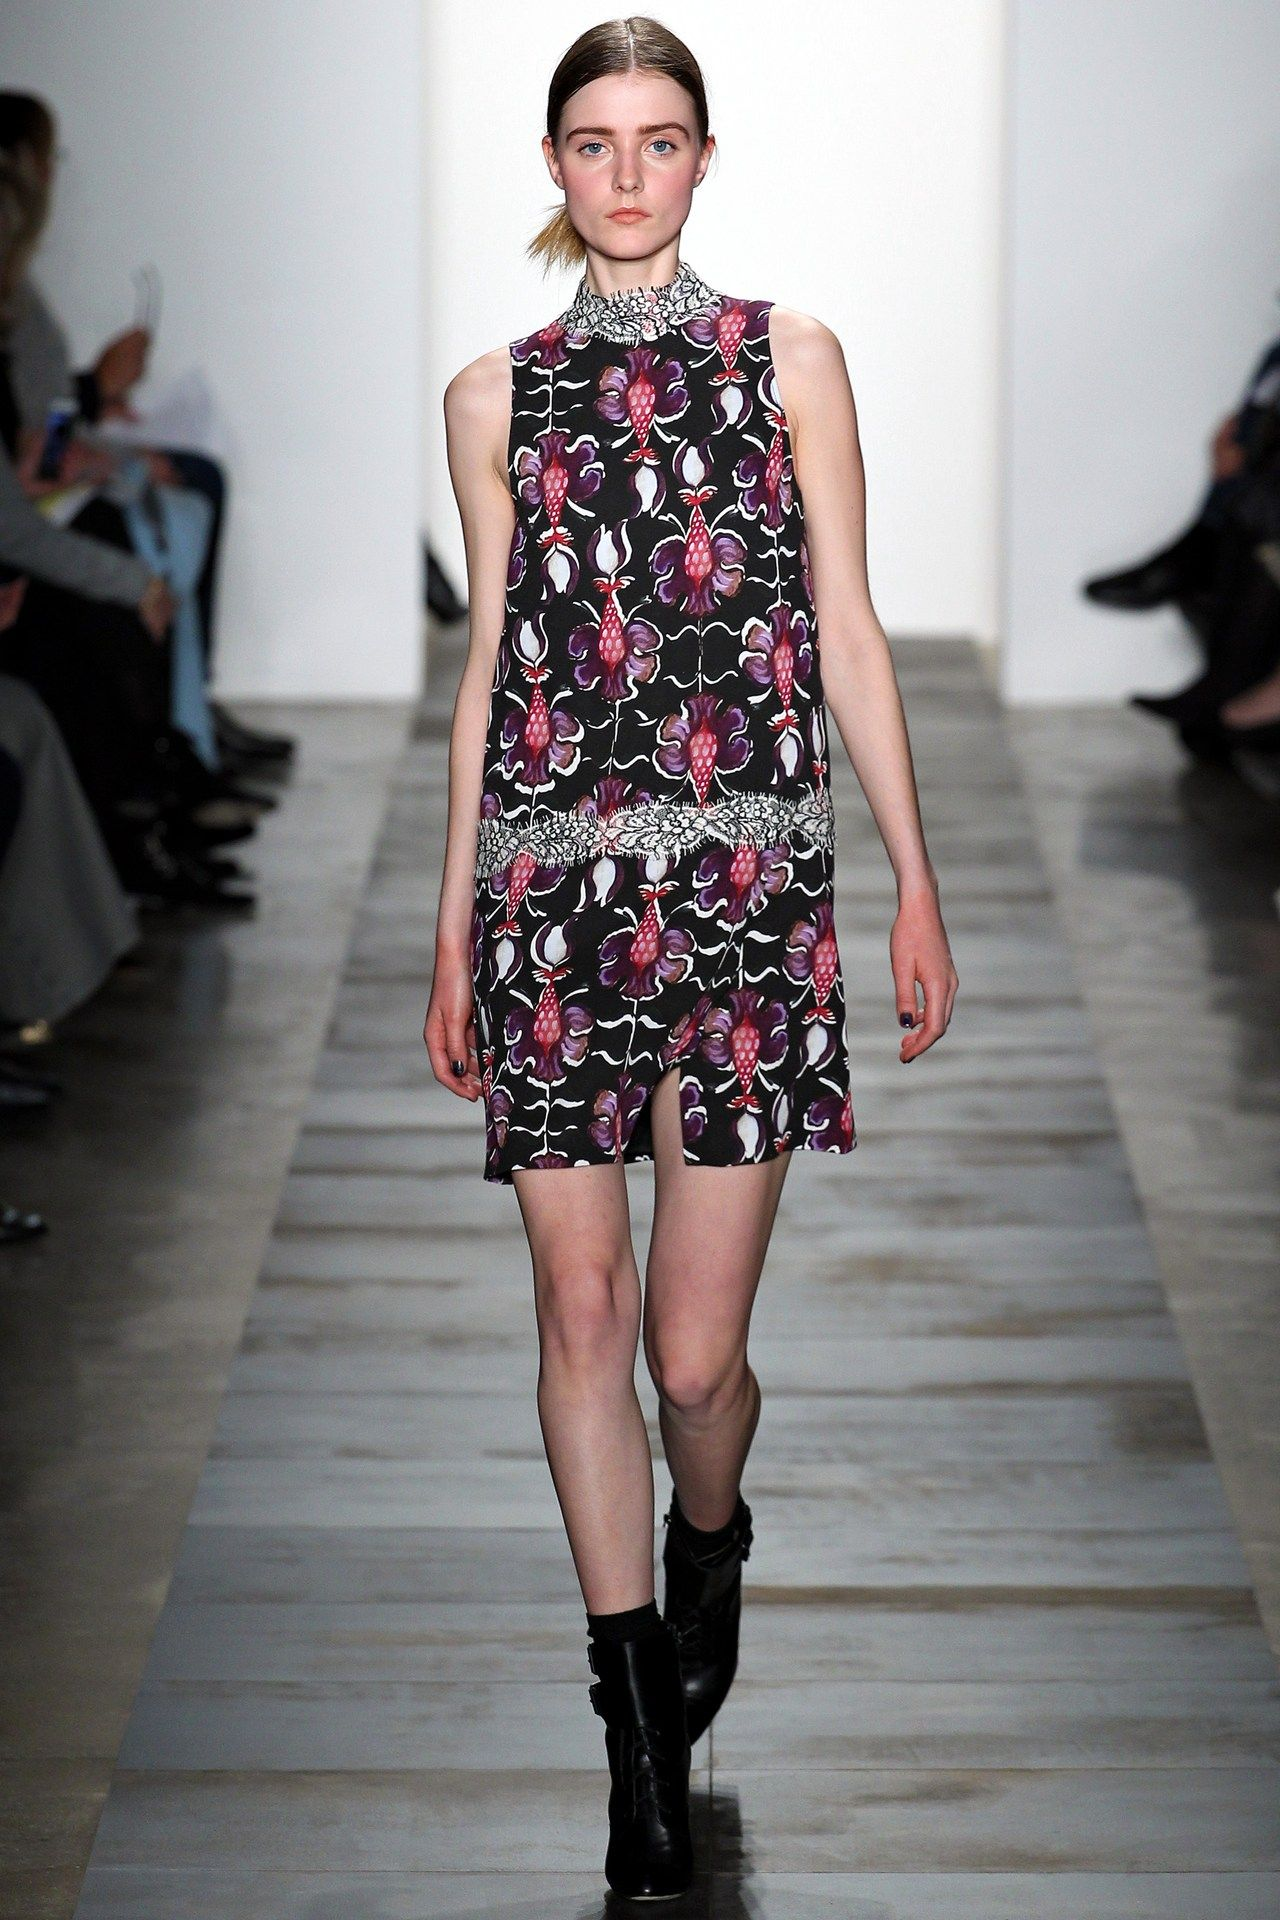 See the Wes Gordon autumn/winter 2015 collection